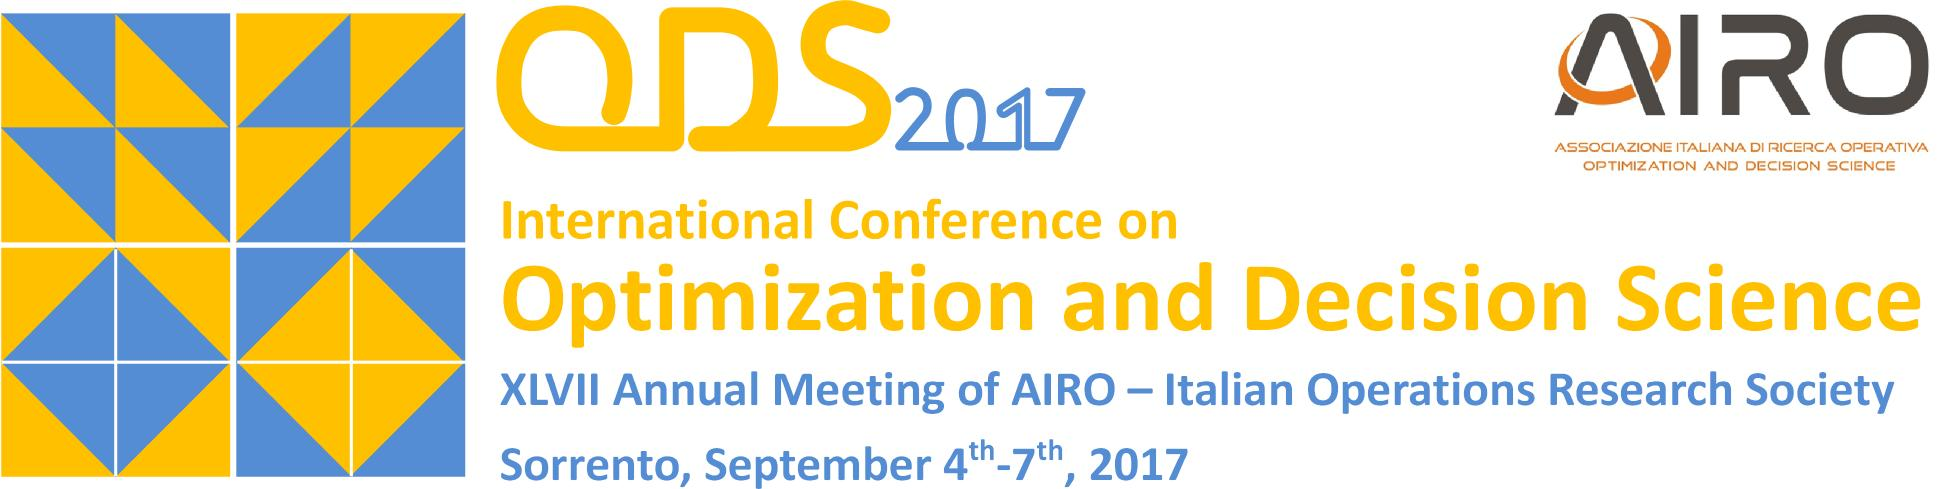 ODS2017 - Optimization and Decision Science